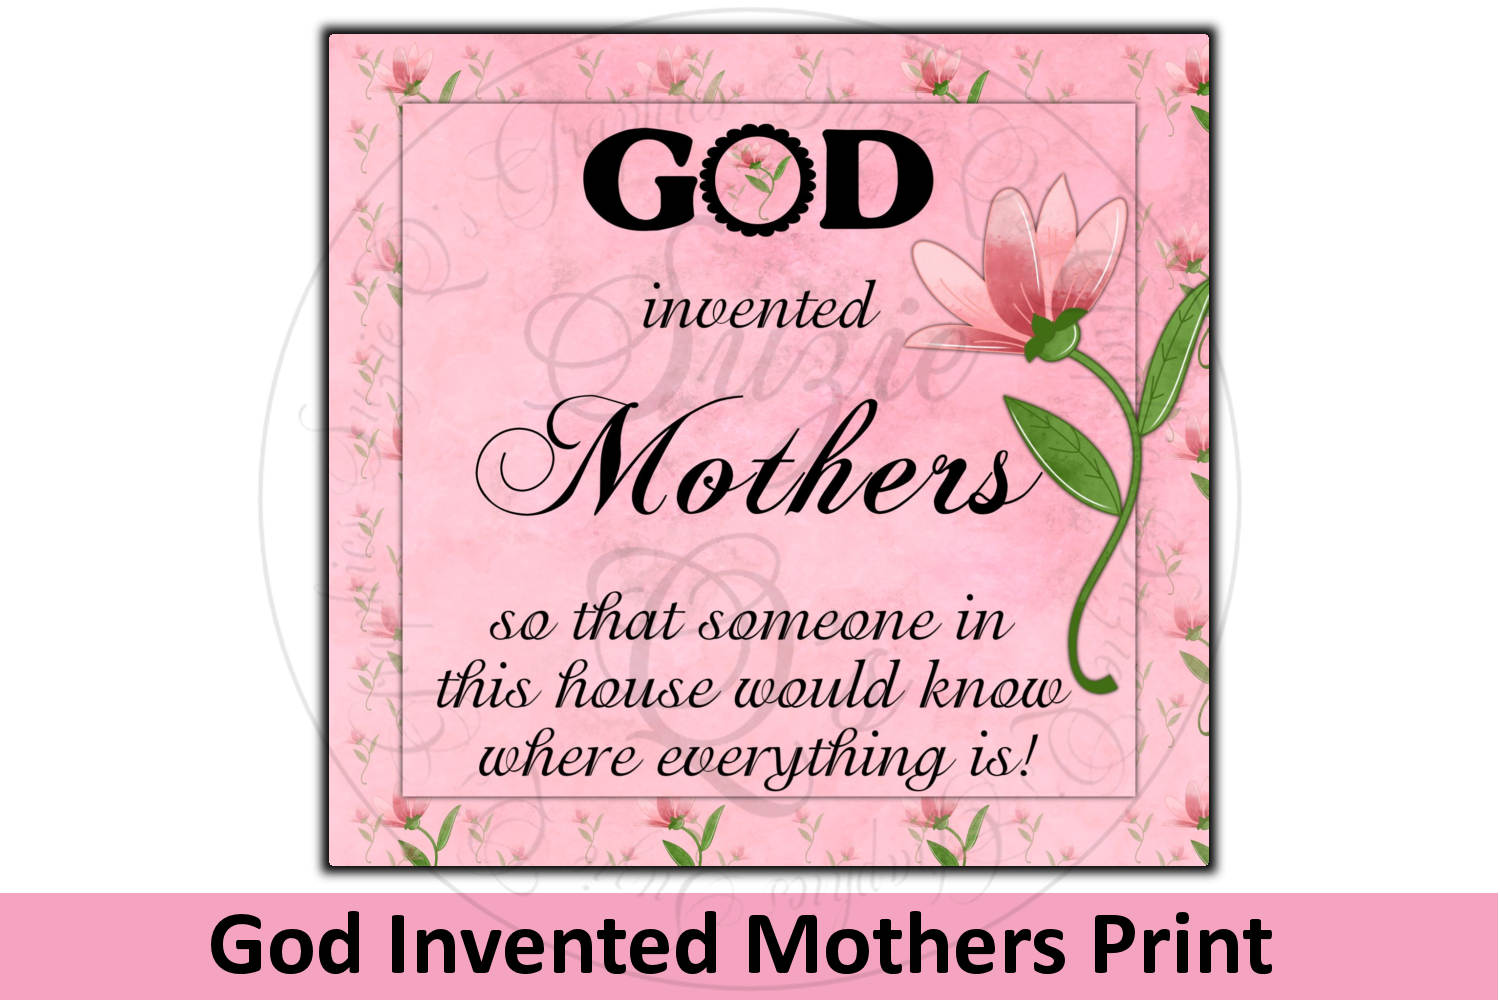 God Invented Mothers Print example image 1